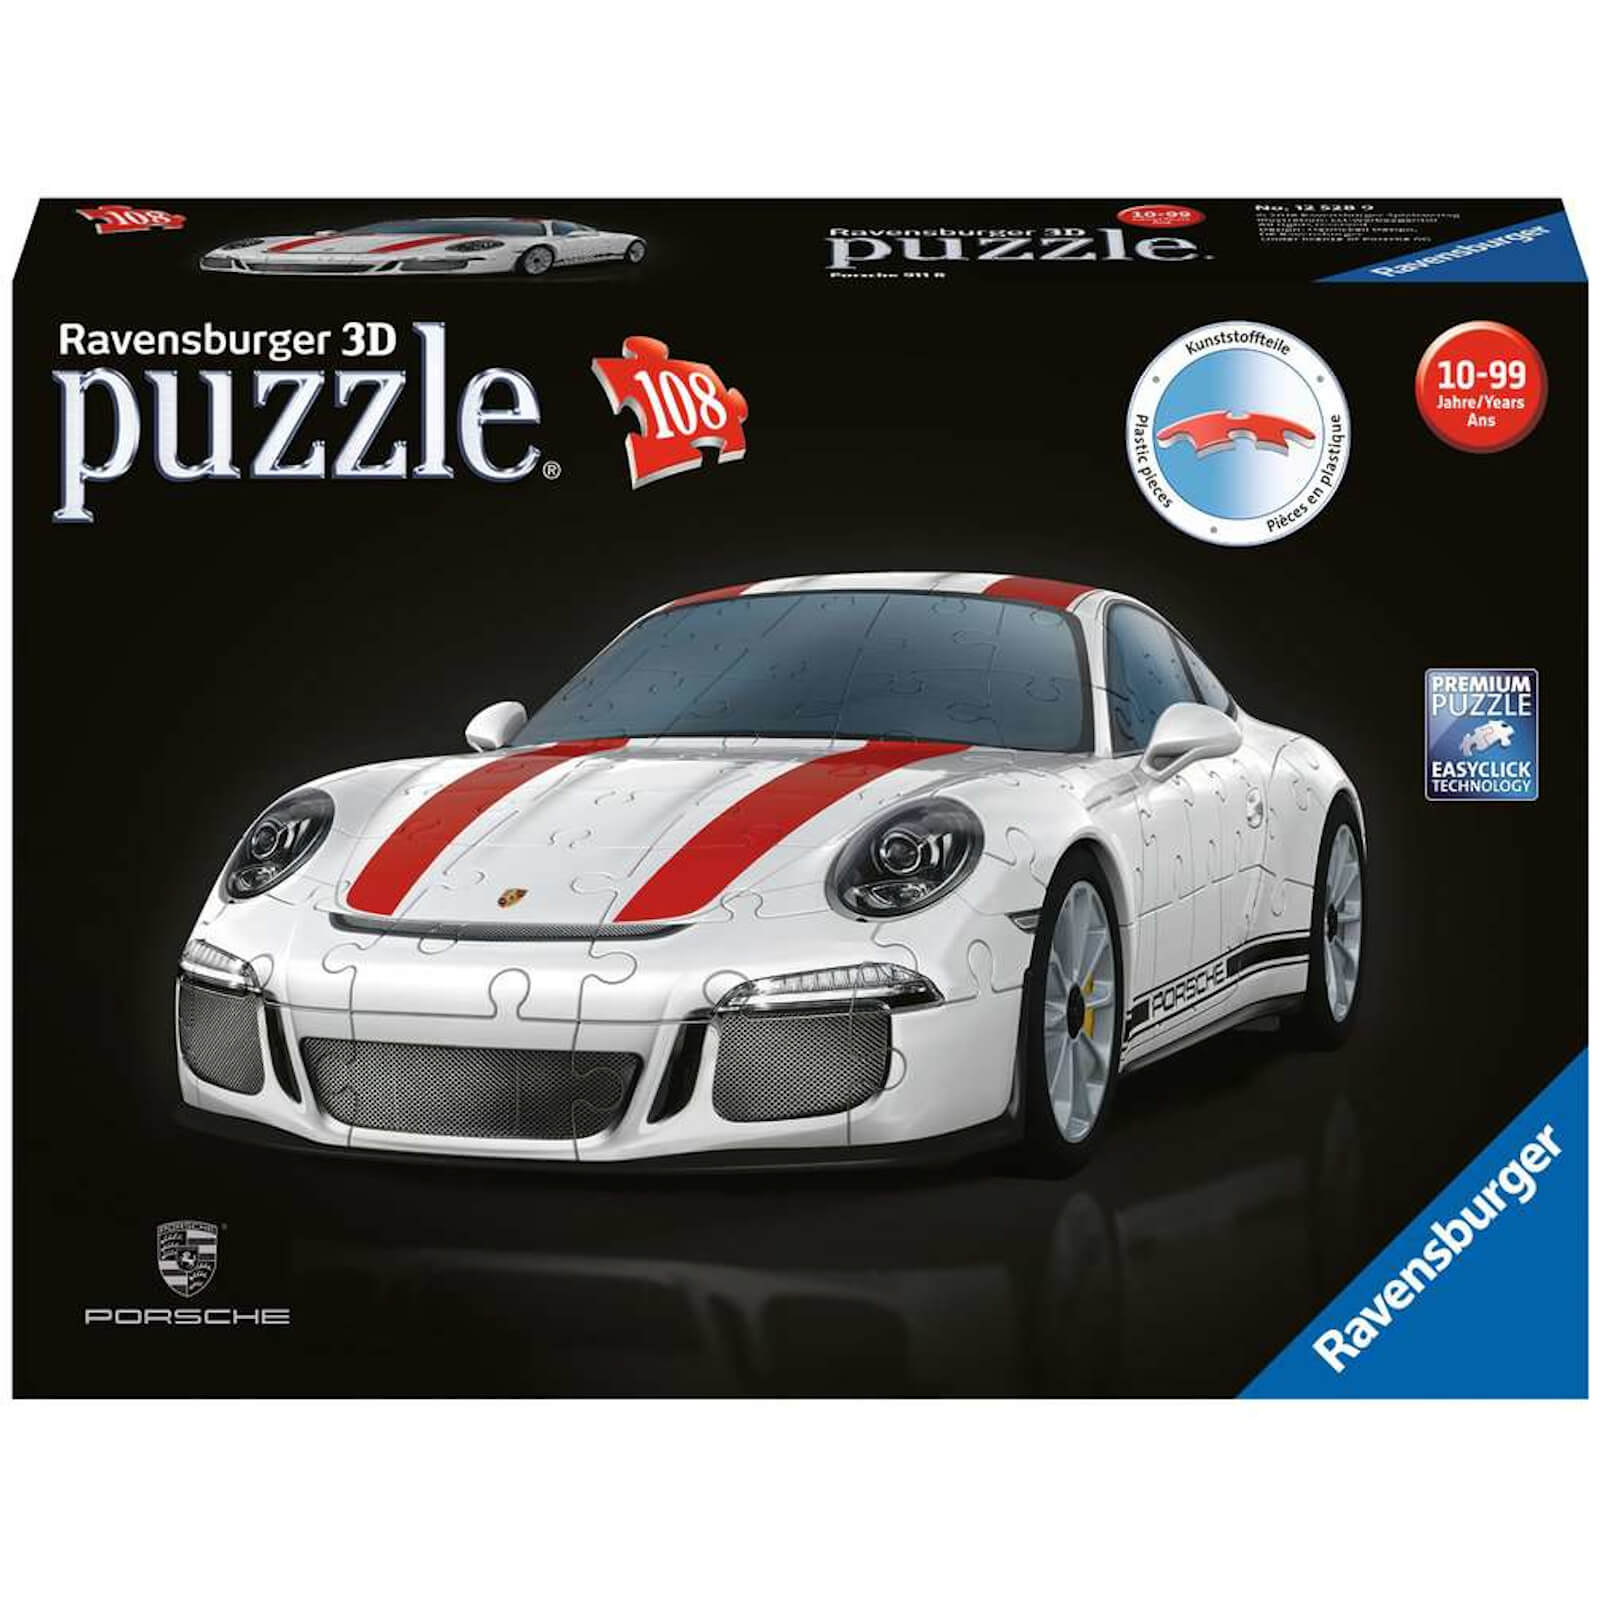 Image of Ravensburger Porsche 911 3D Jigsaw Puzzle (108 Pieces)